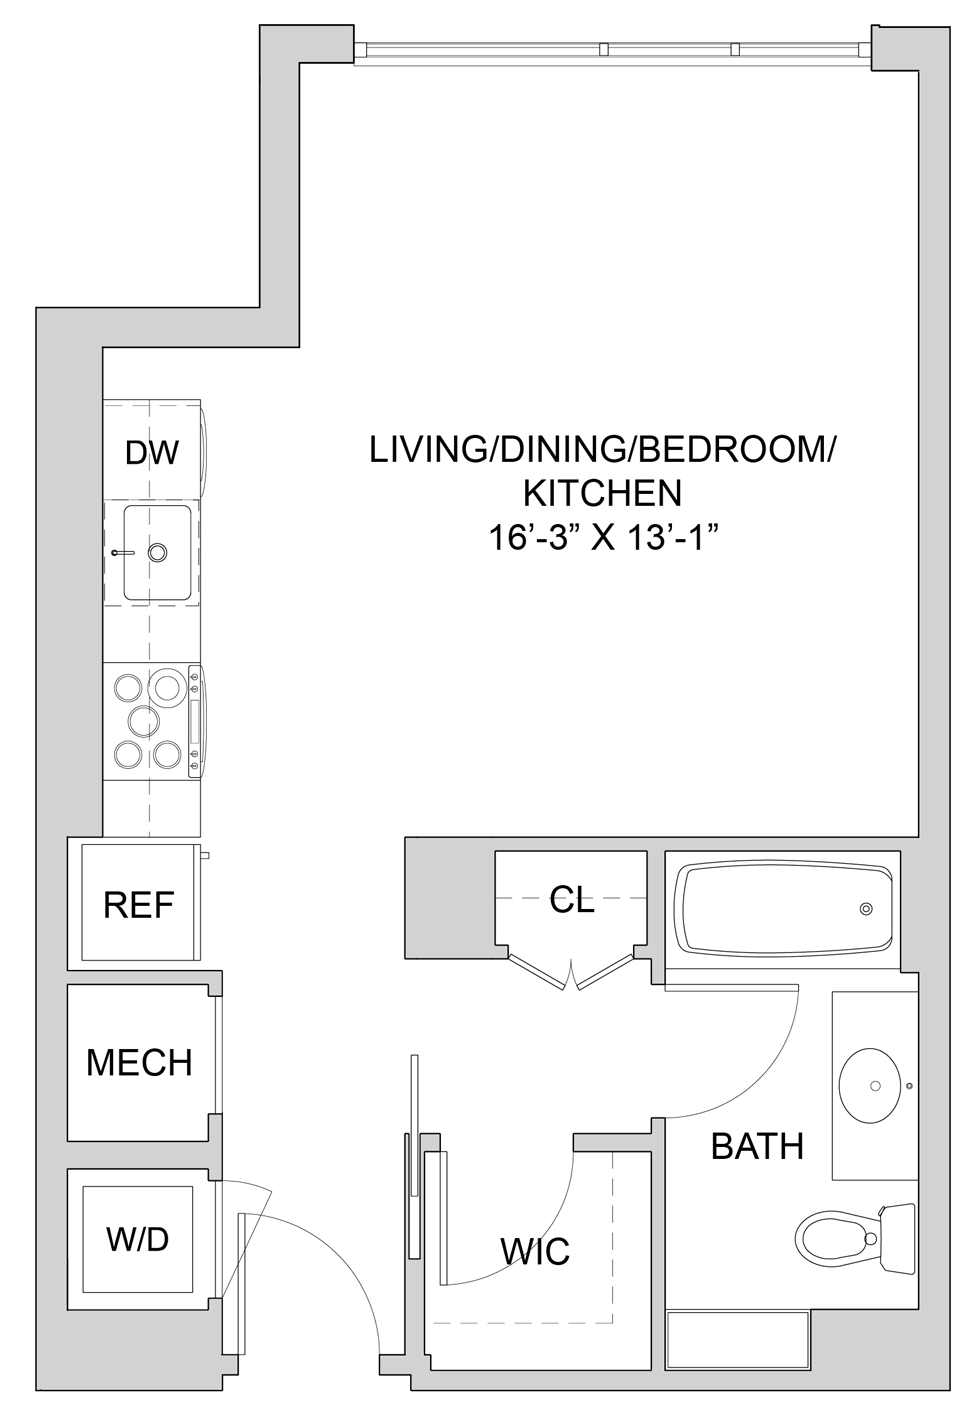 Floorplan N224 Image enlarged